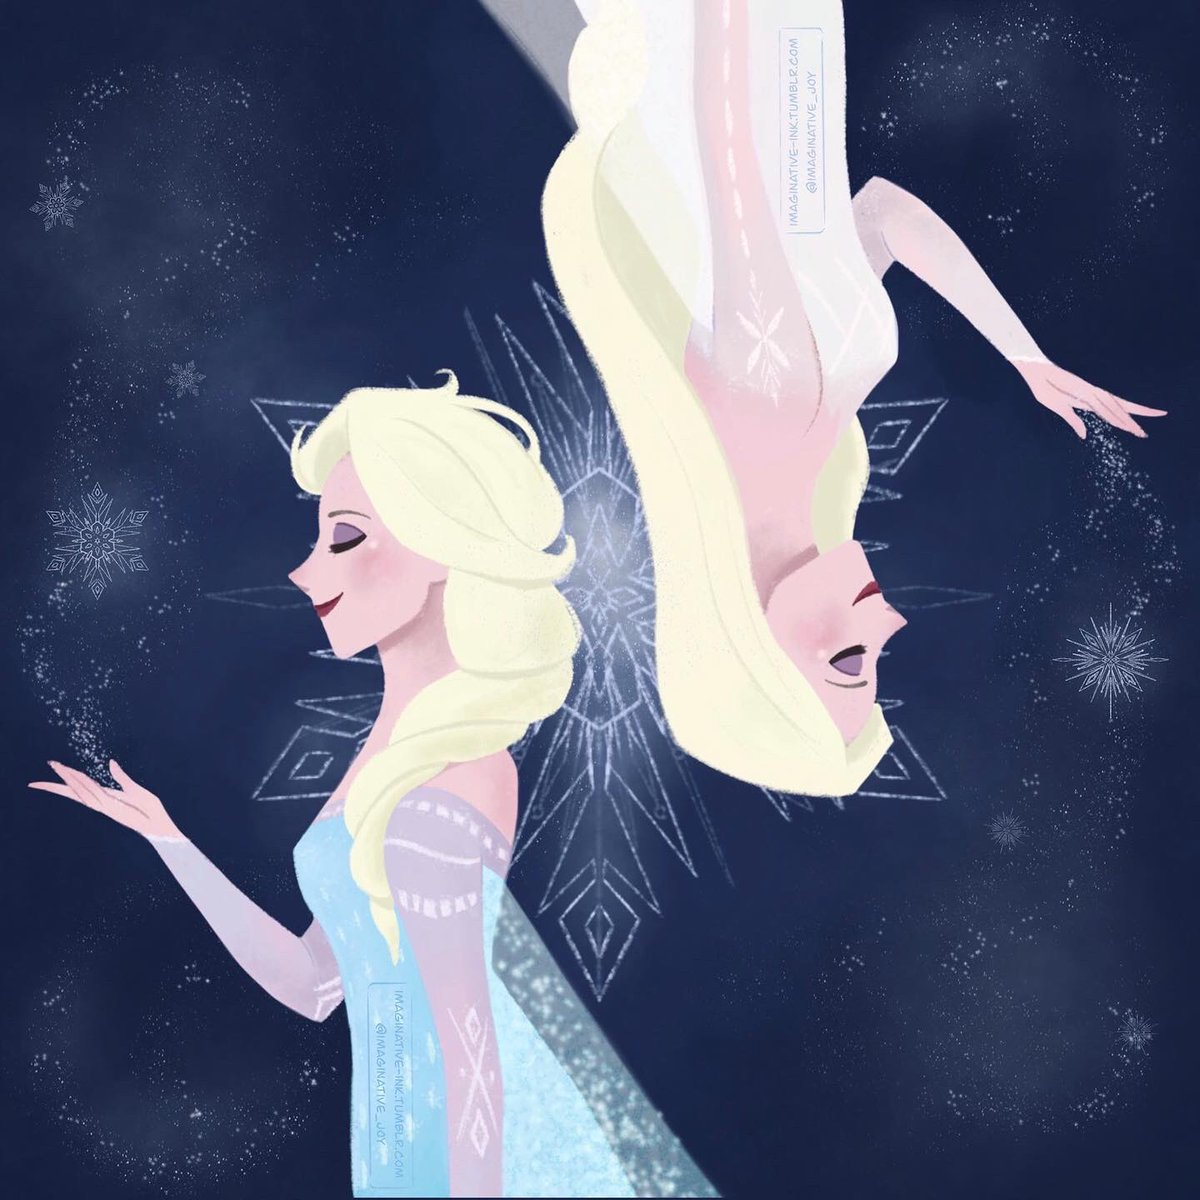 Messing around with a lineless style by drawing my favorite queen in my favorite dresses of hers. Trying to make something bigger of this to show off the rest of the dresses. Take this version in the meantime! #Frozen2  #frozen  #frozen2spoilers #elsa  #queenelsa <br>http://pic.twitter.com/2uvhRFM8NS